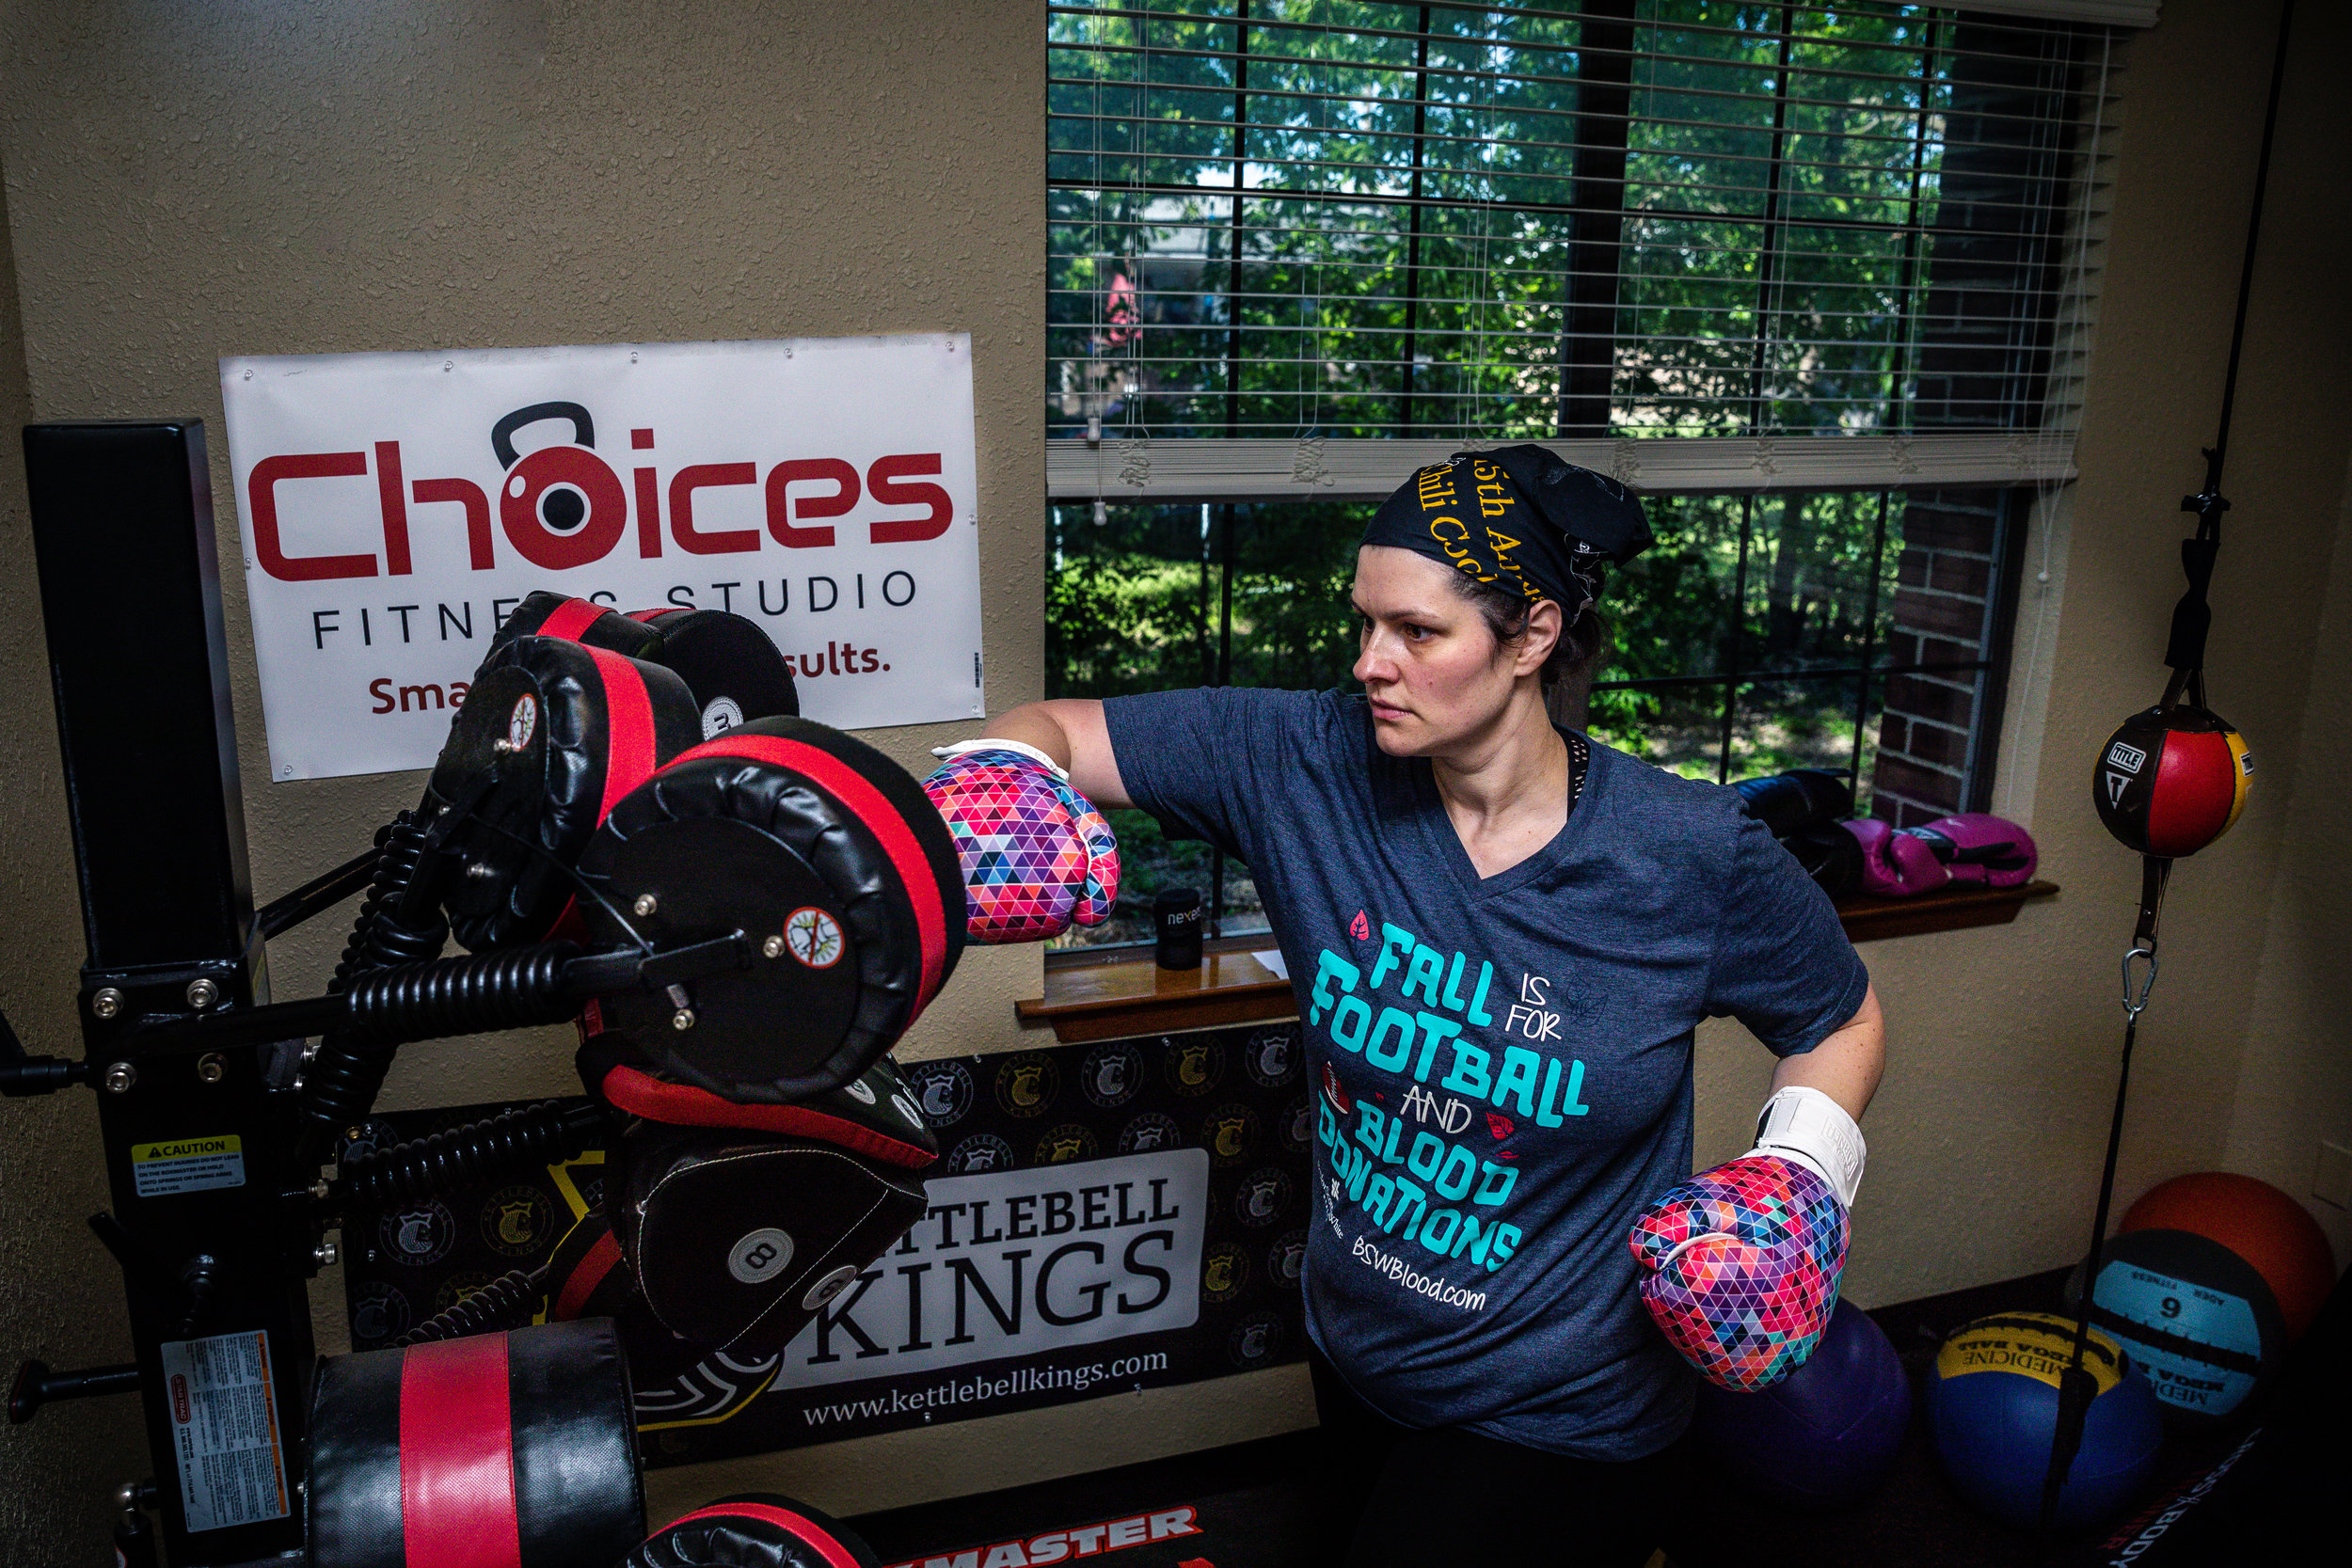 Erica lands a right during a Boxmaster workout at Choices Fitness Studio.